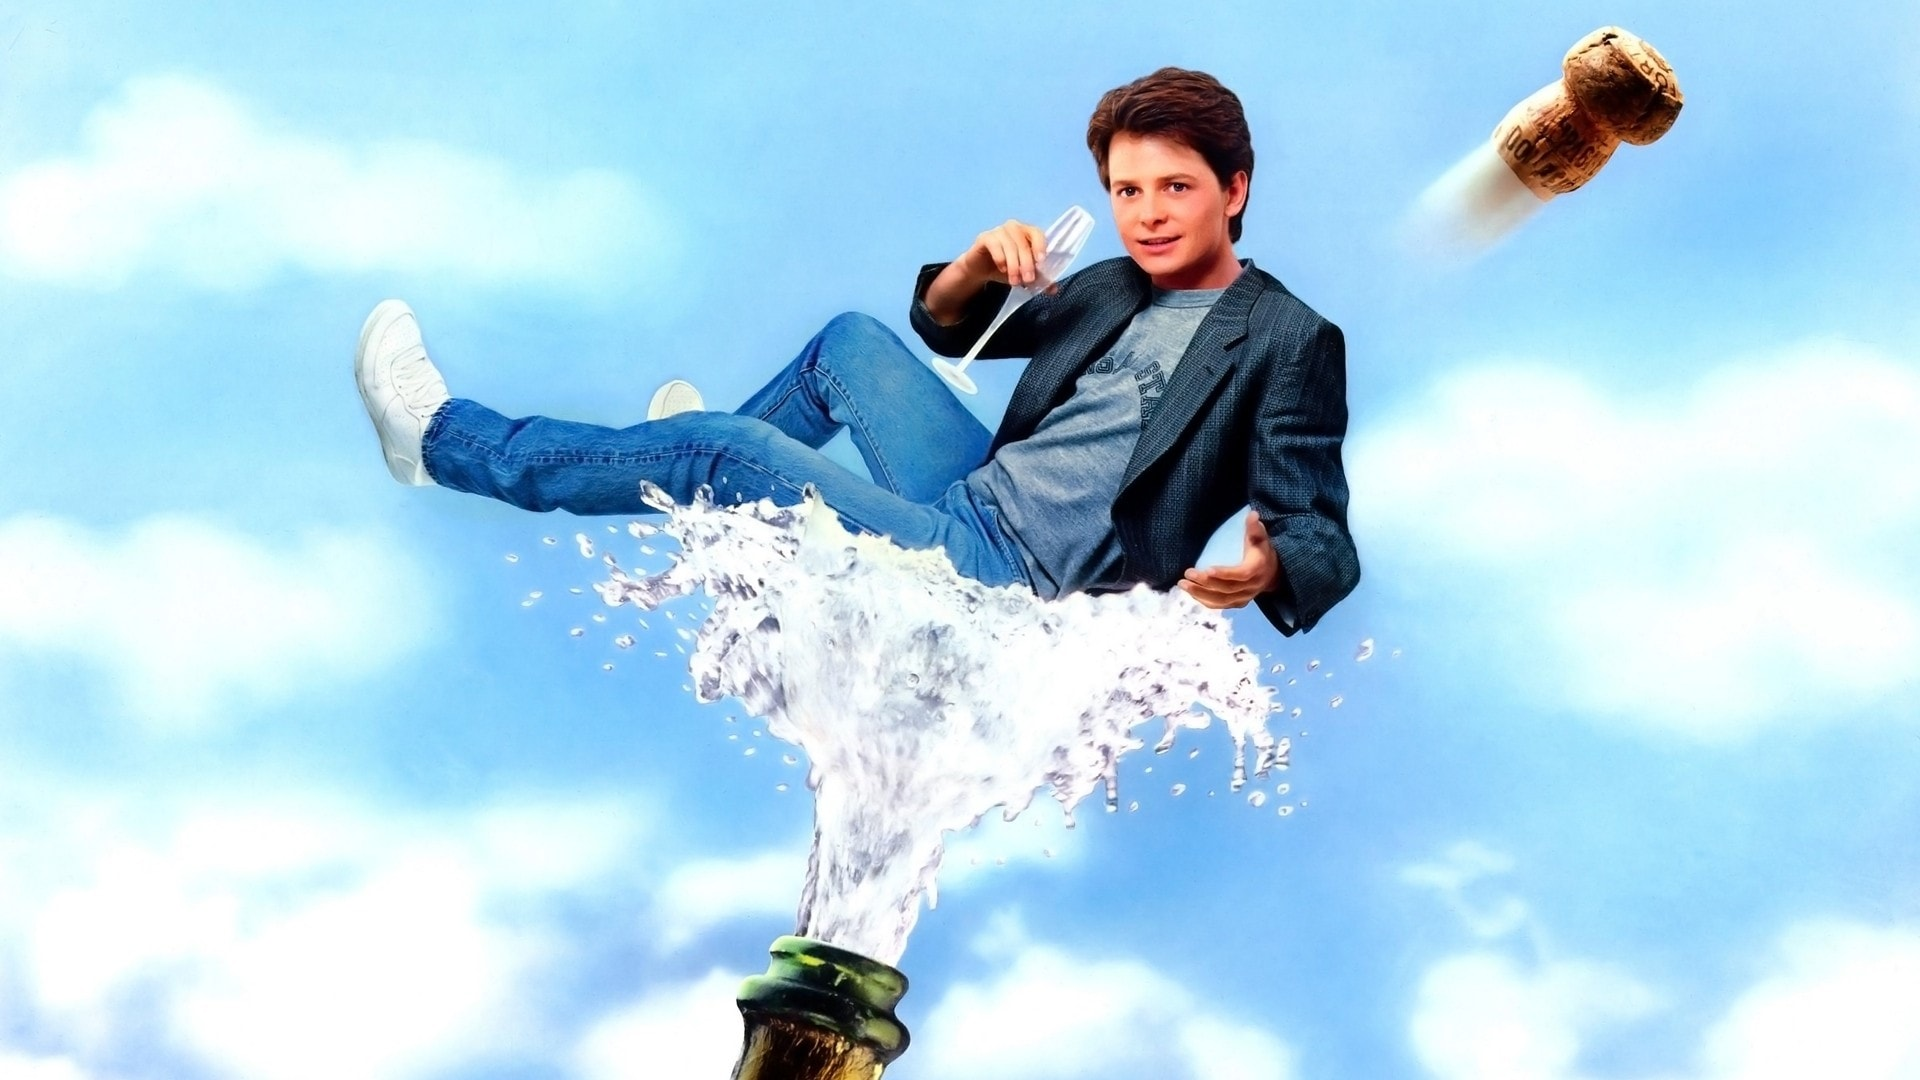 Michael J. Fox Desktop wallpaper